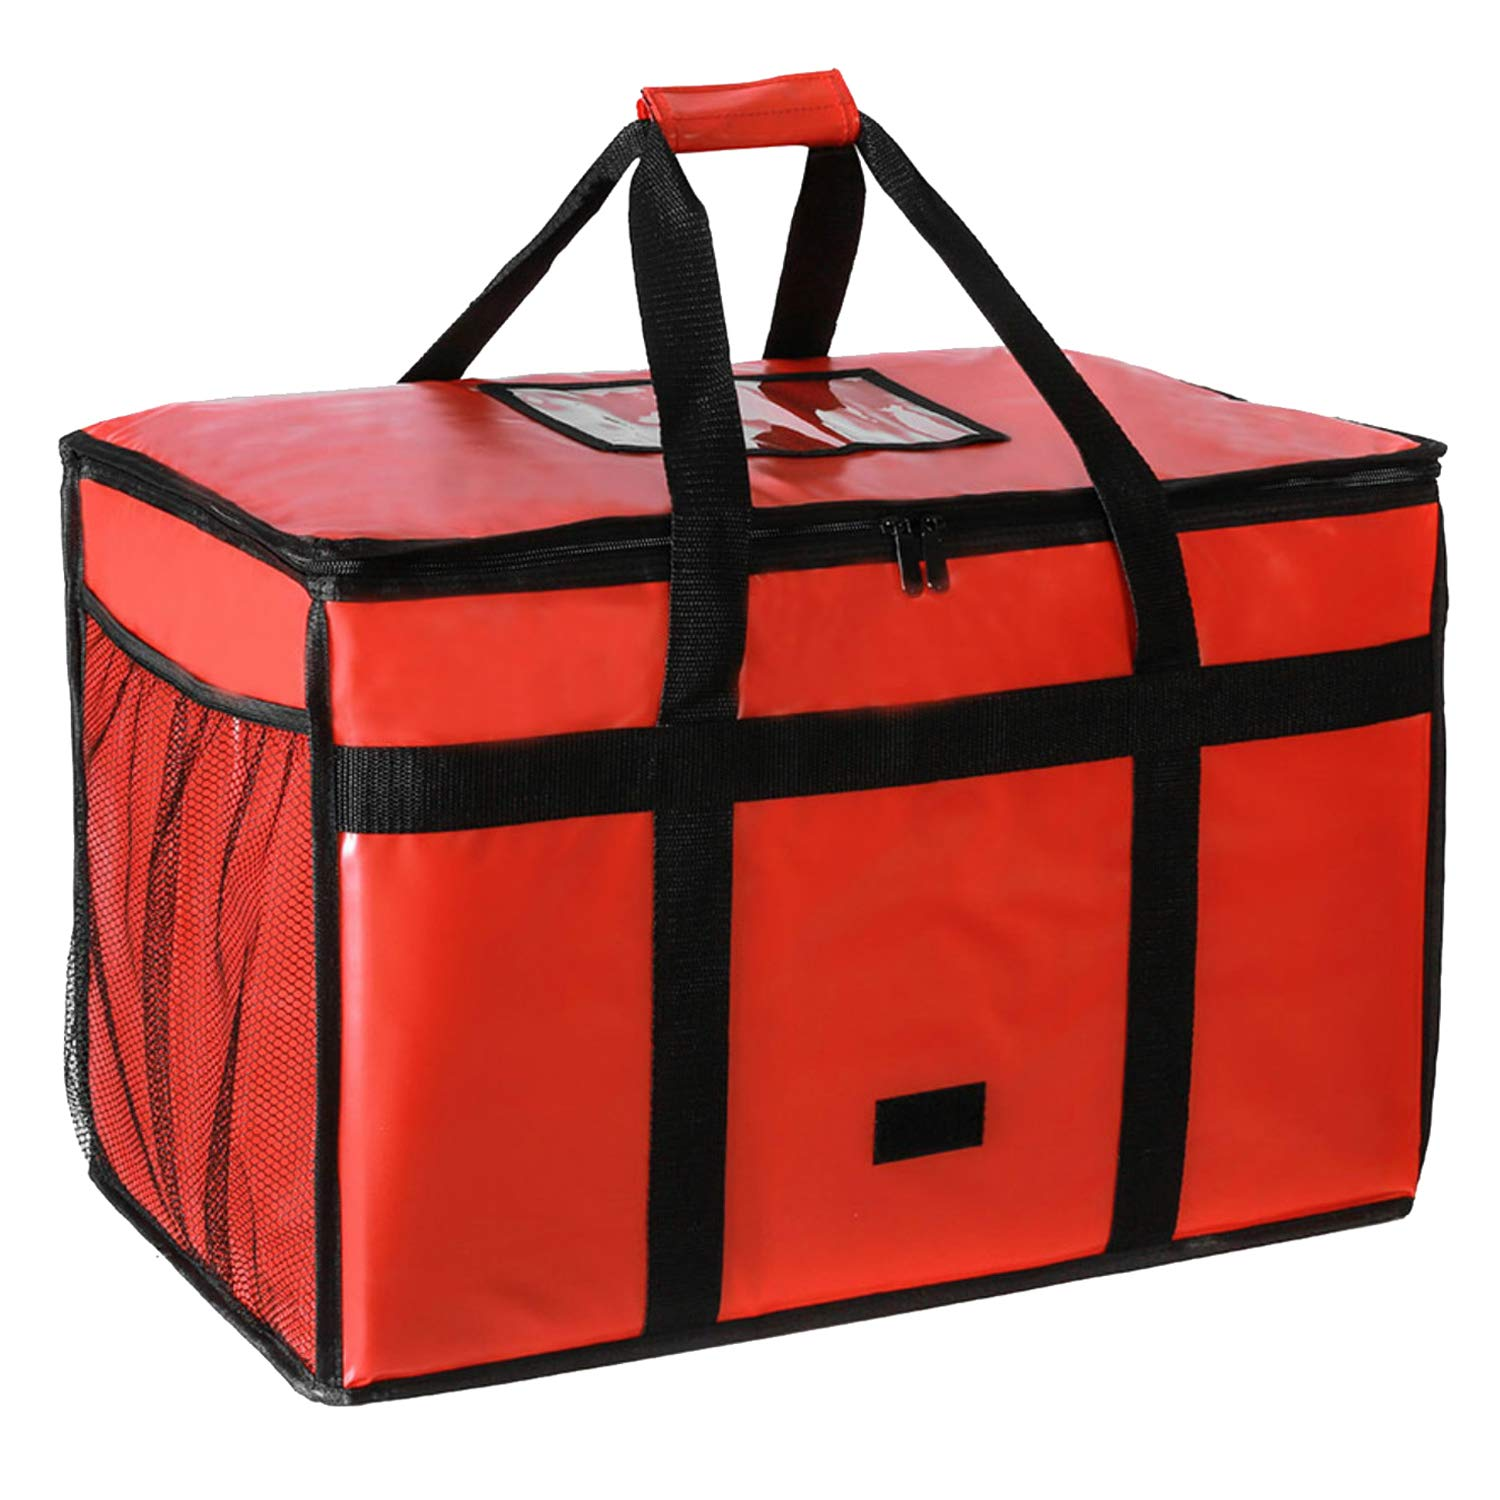 BFEERgirl XL Nylon Thermal Insulated Food Delivery, Thermal Reusable Grocery Bag, Food Warmer Carrier for Catering, Uber Eats, Doordash, Restaurant, Instacart (Red-Extra Large 73L)